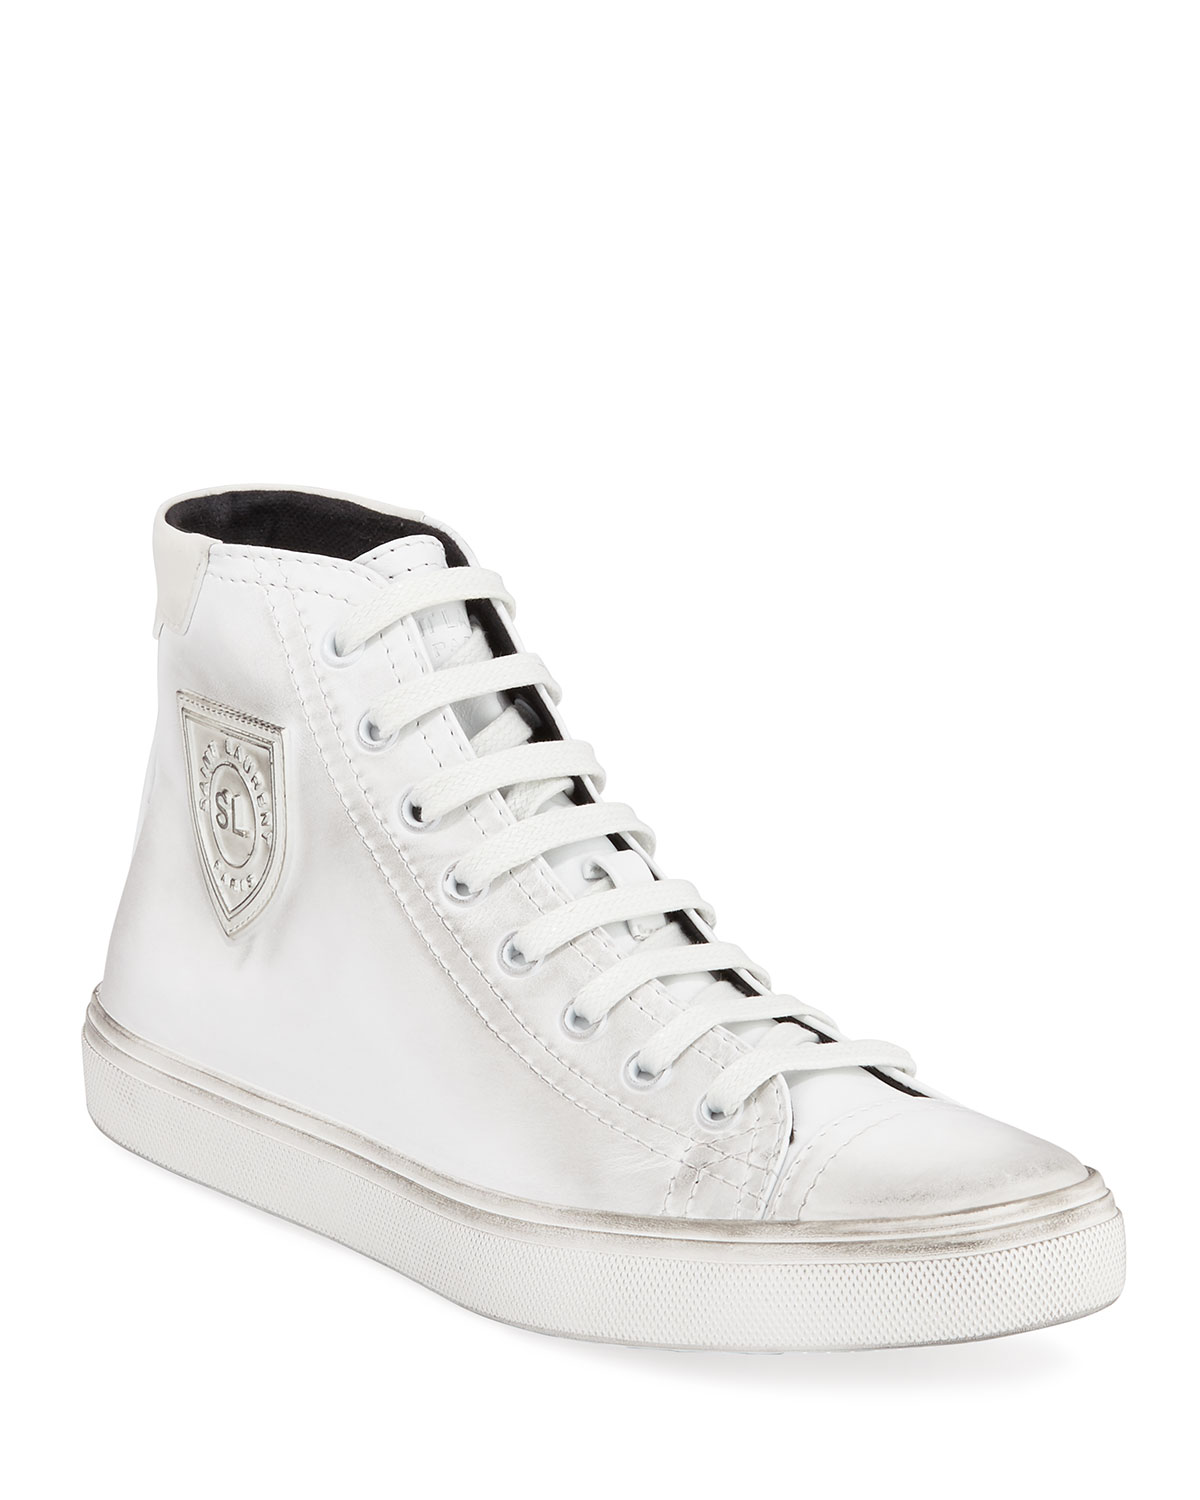 Bedford Distressed High Top Sneaker, White